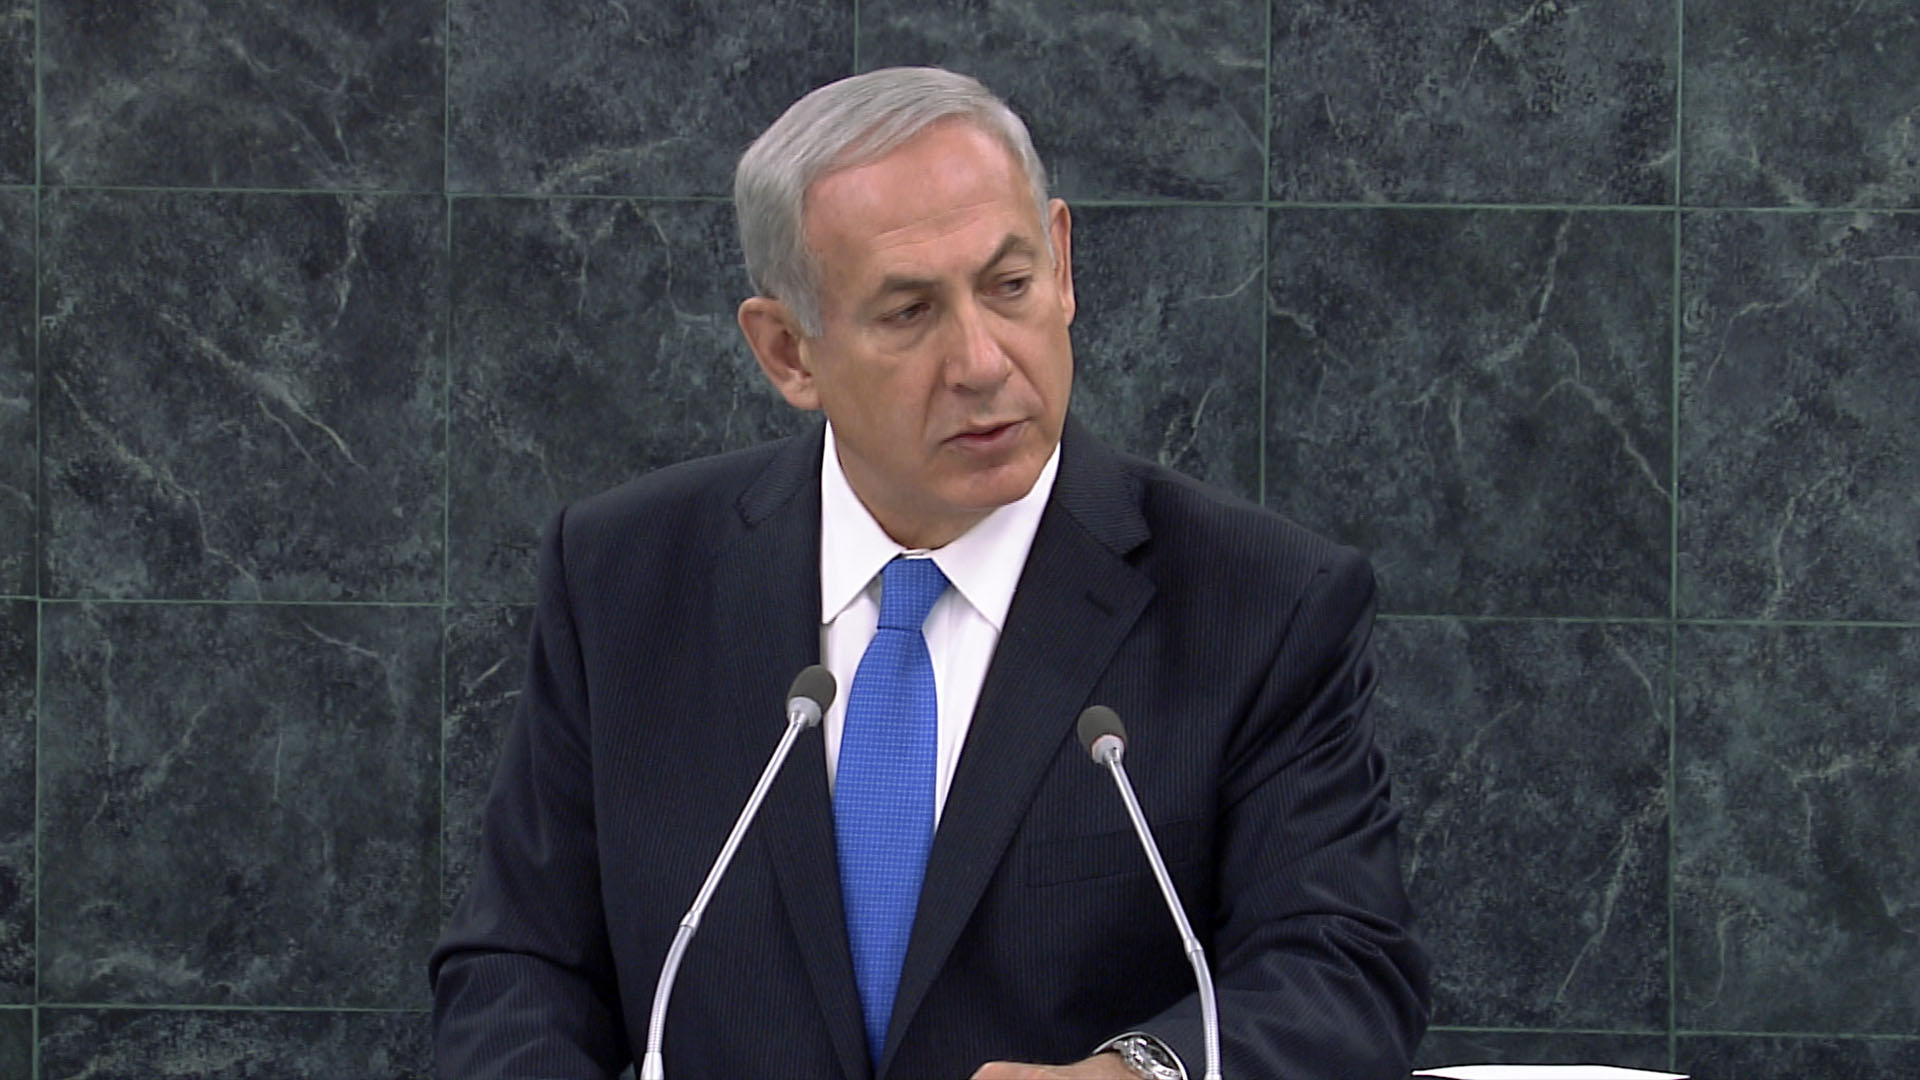 Netanyahu: Iran's fanaticism is not bluster